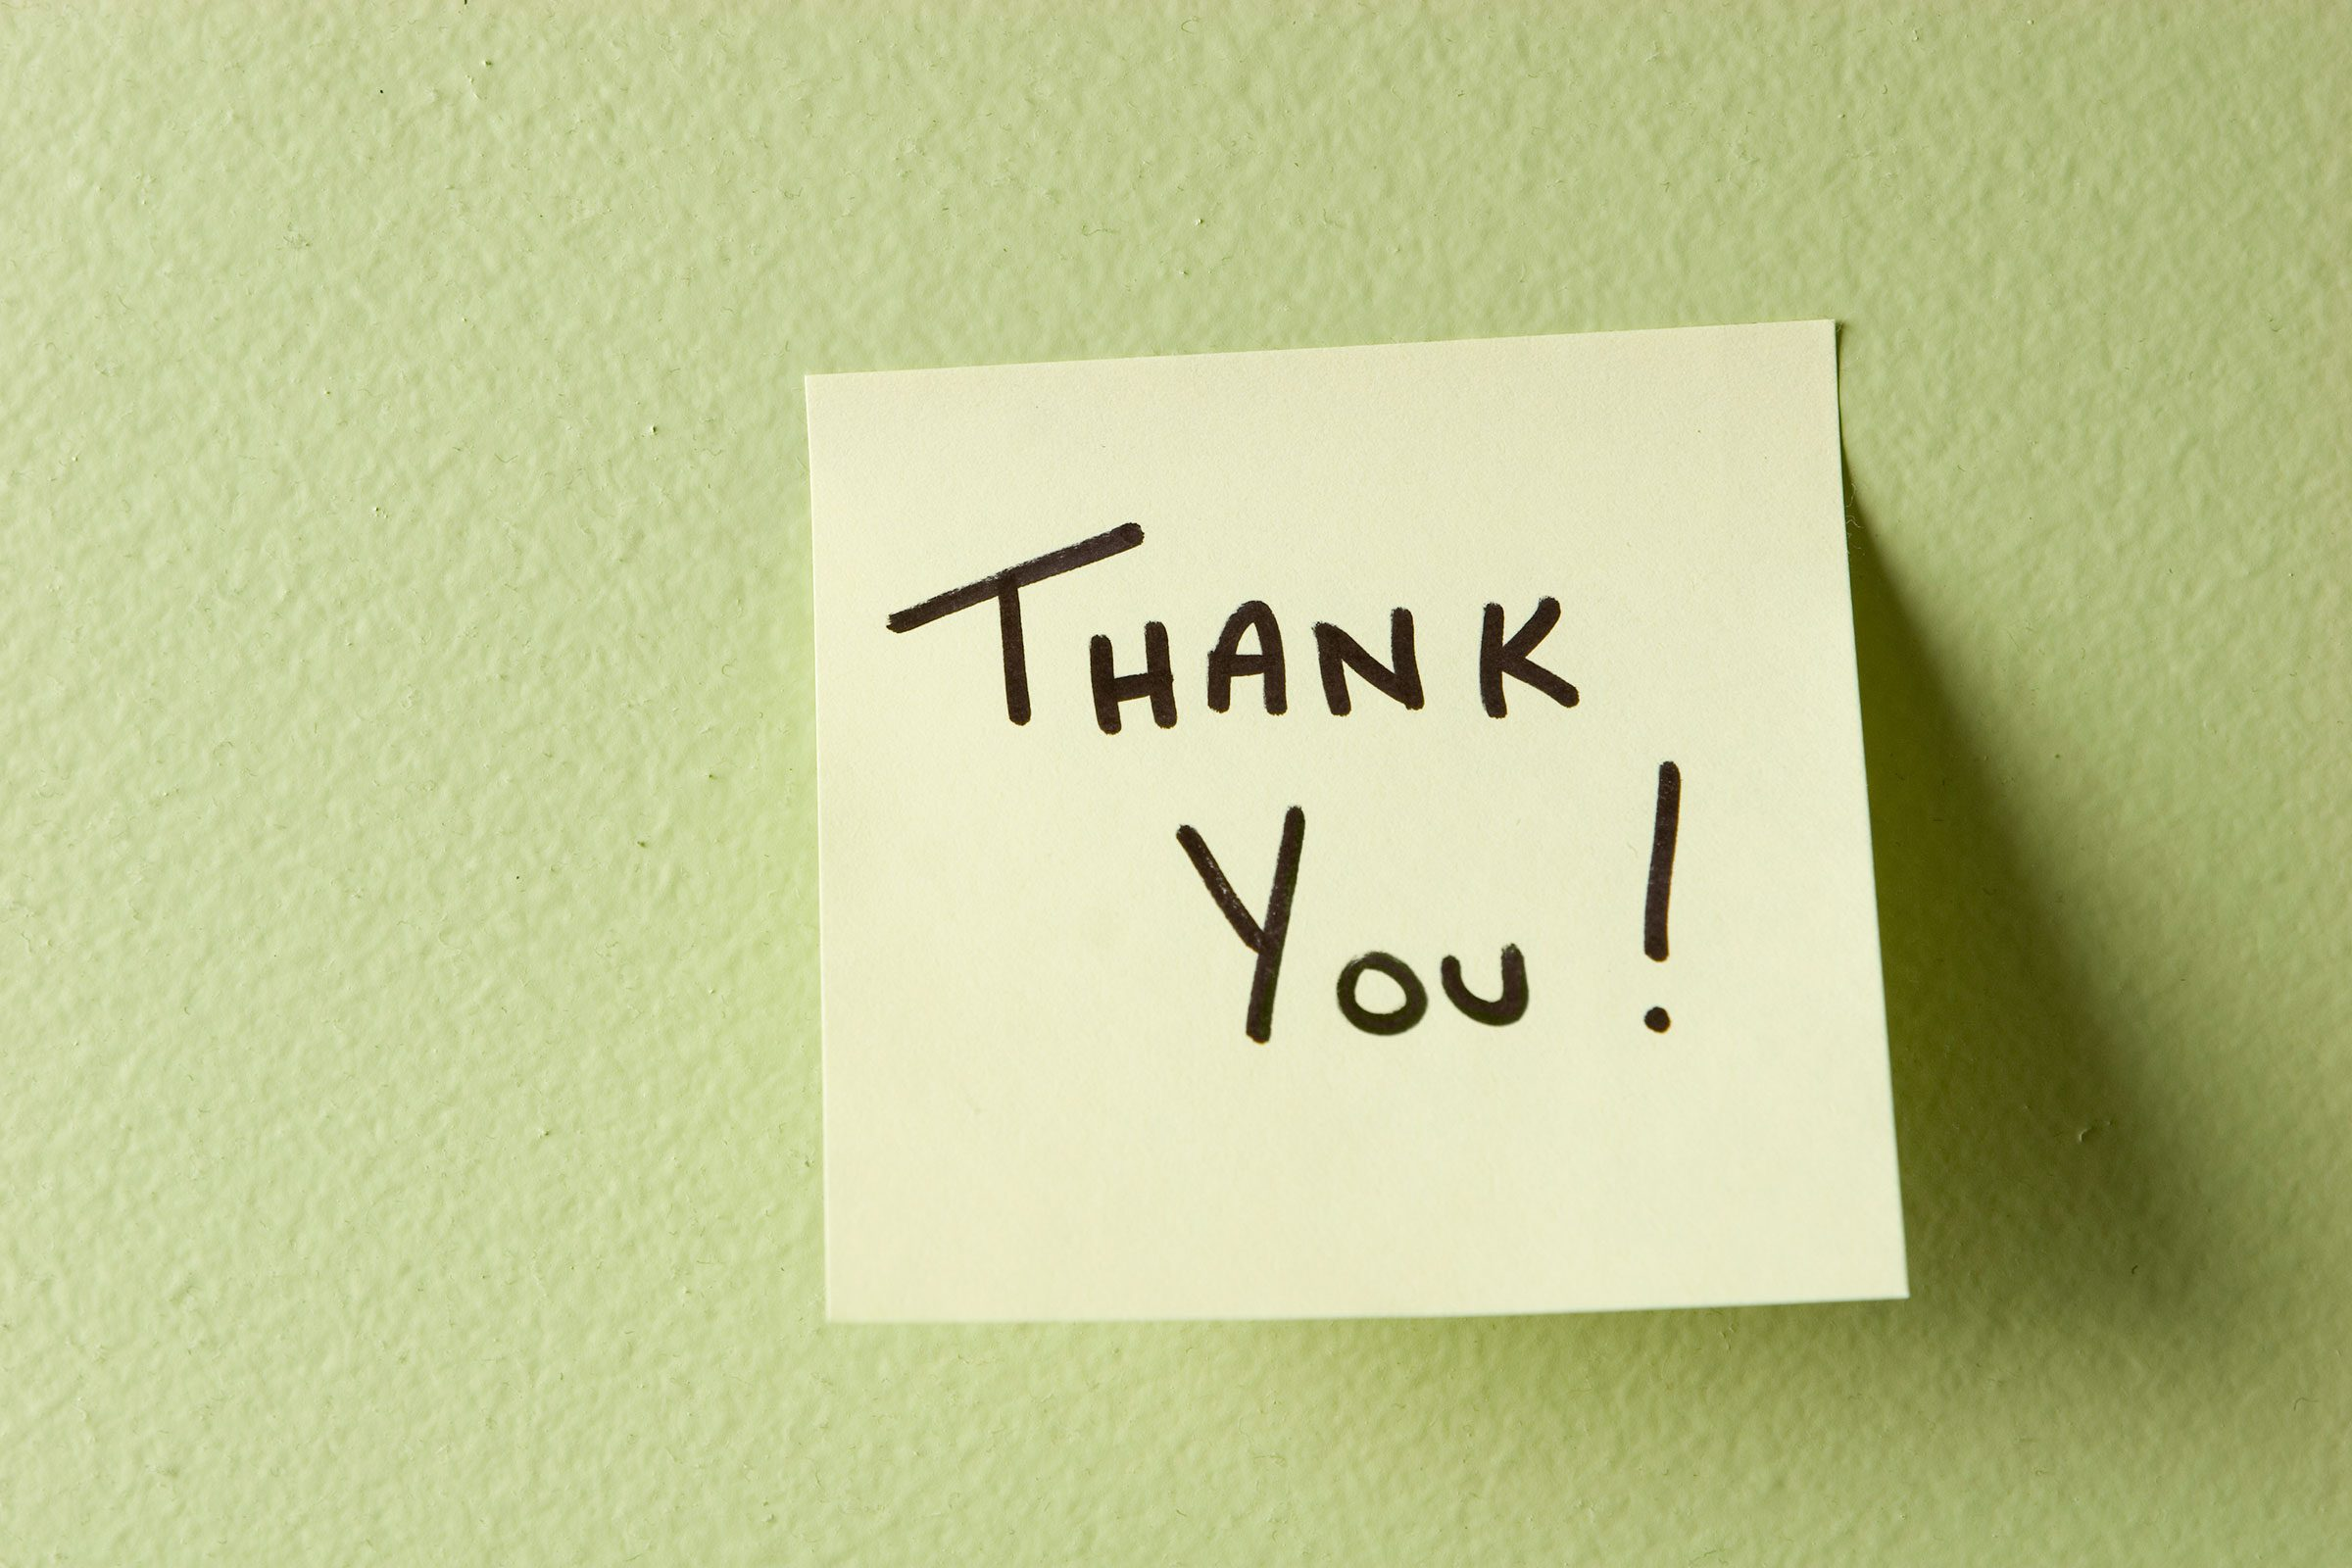 Thank You House: What Your Housecleaner Won't Tell You